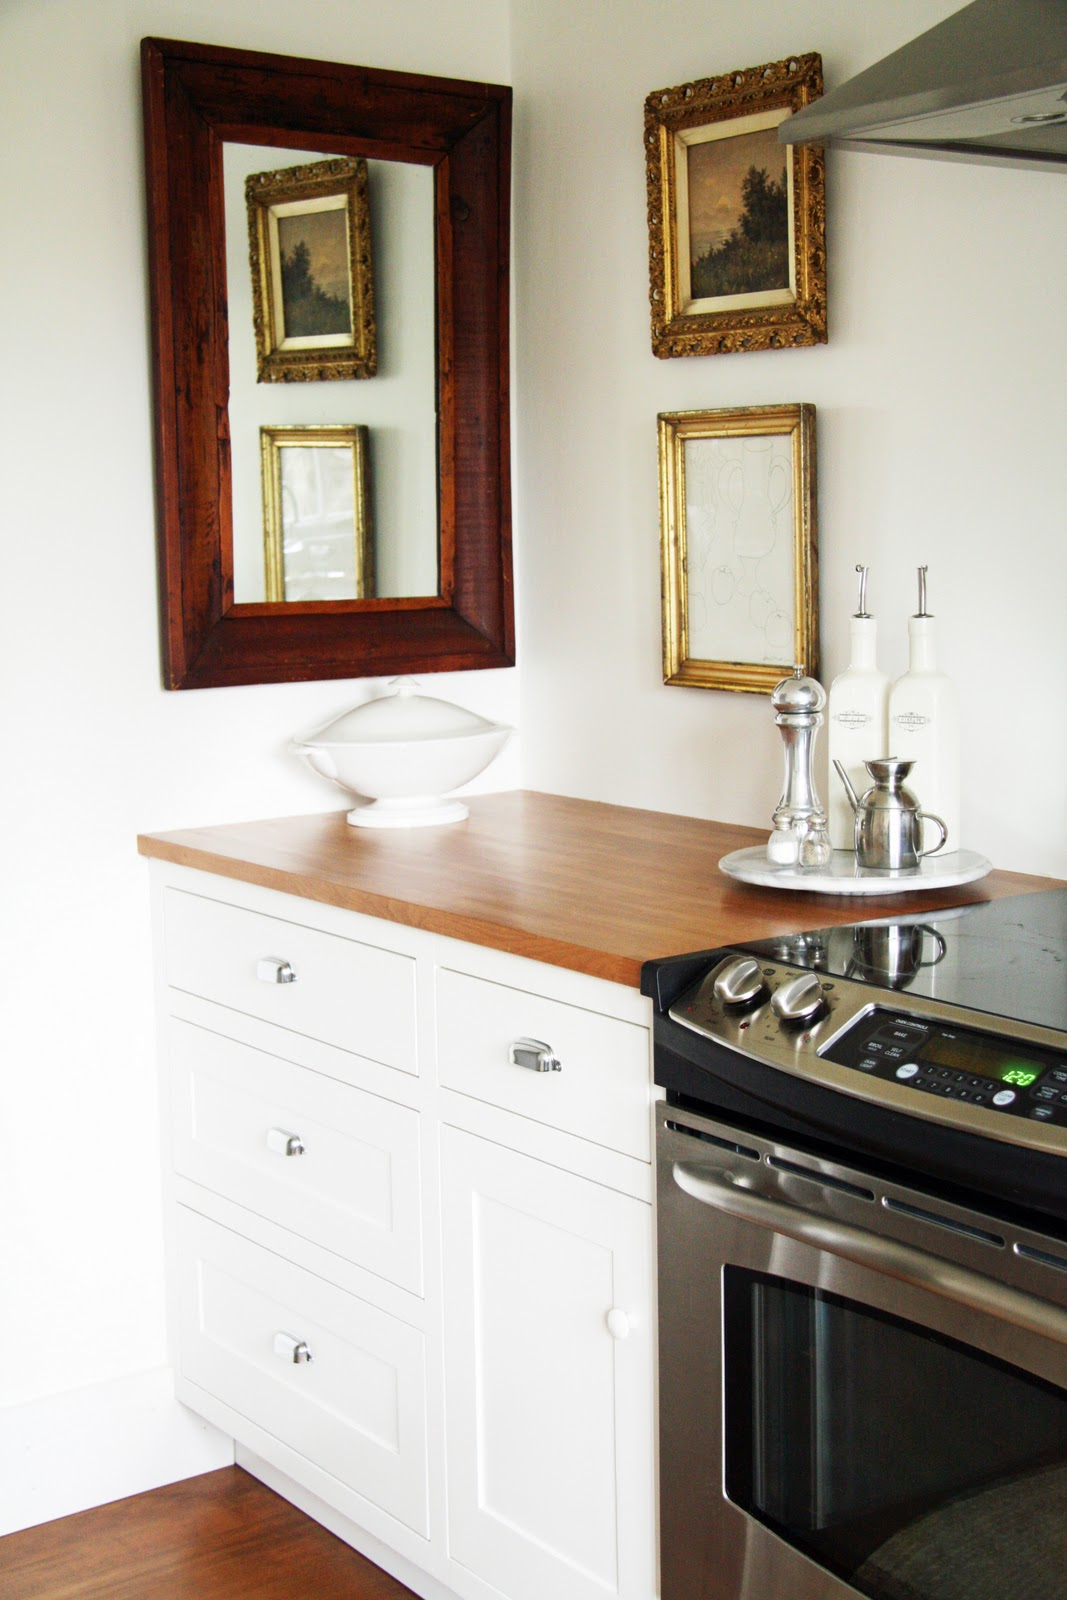 Country Farmhouse Kitchen in the fields : the kitchen